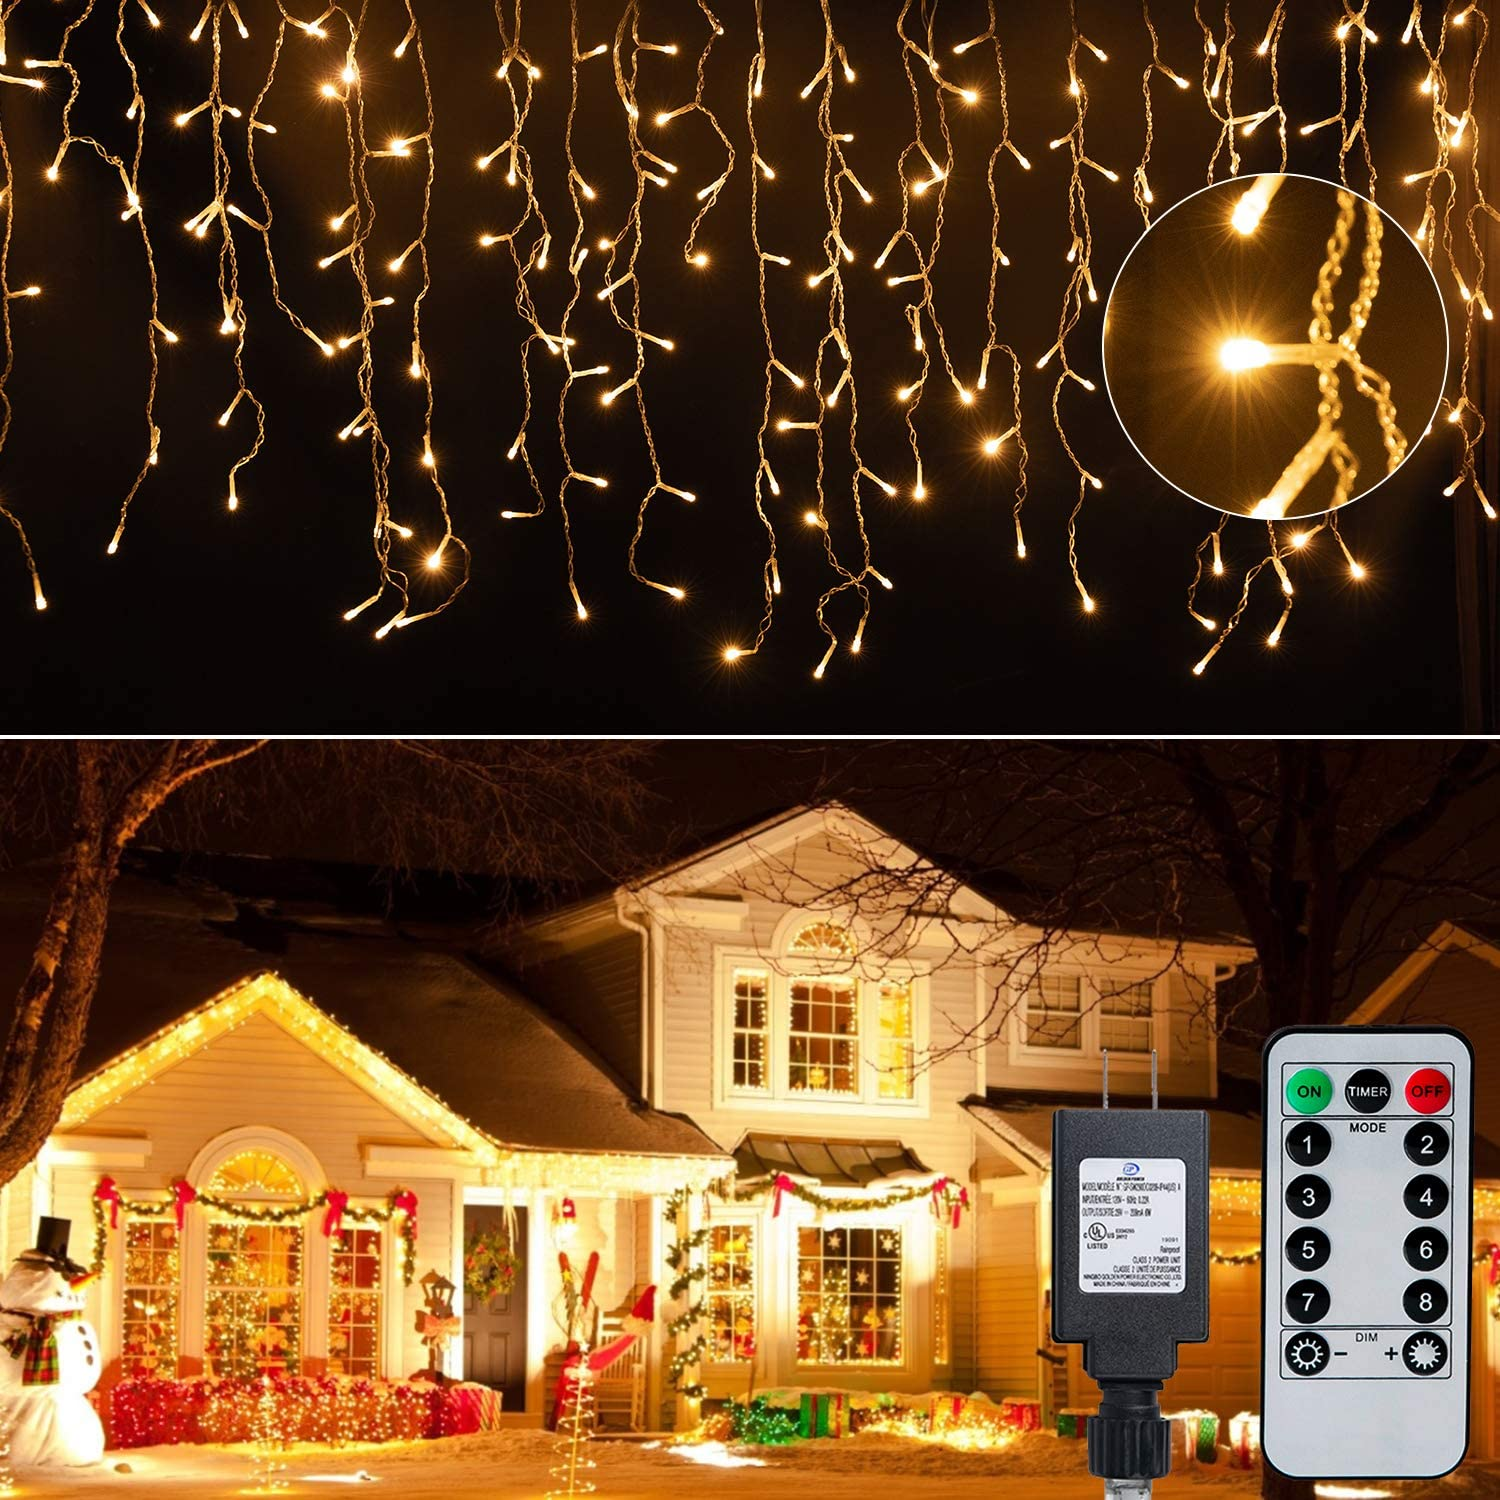 Icicle Lights Christmas Lights Outdoor, 19.6 Feet 306 Led Twinkle Curtain String Lights, with Remote Timing Waterproof Hanging Light for Patio Tree Indoor Christmas Decorations Outside, Warm White